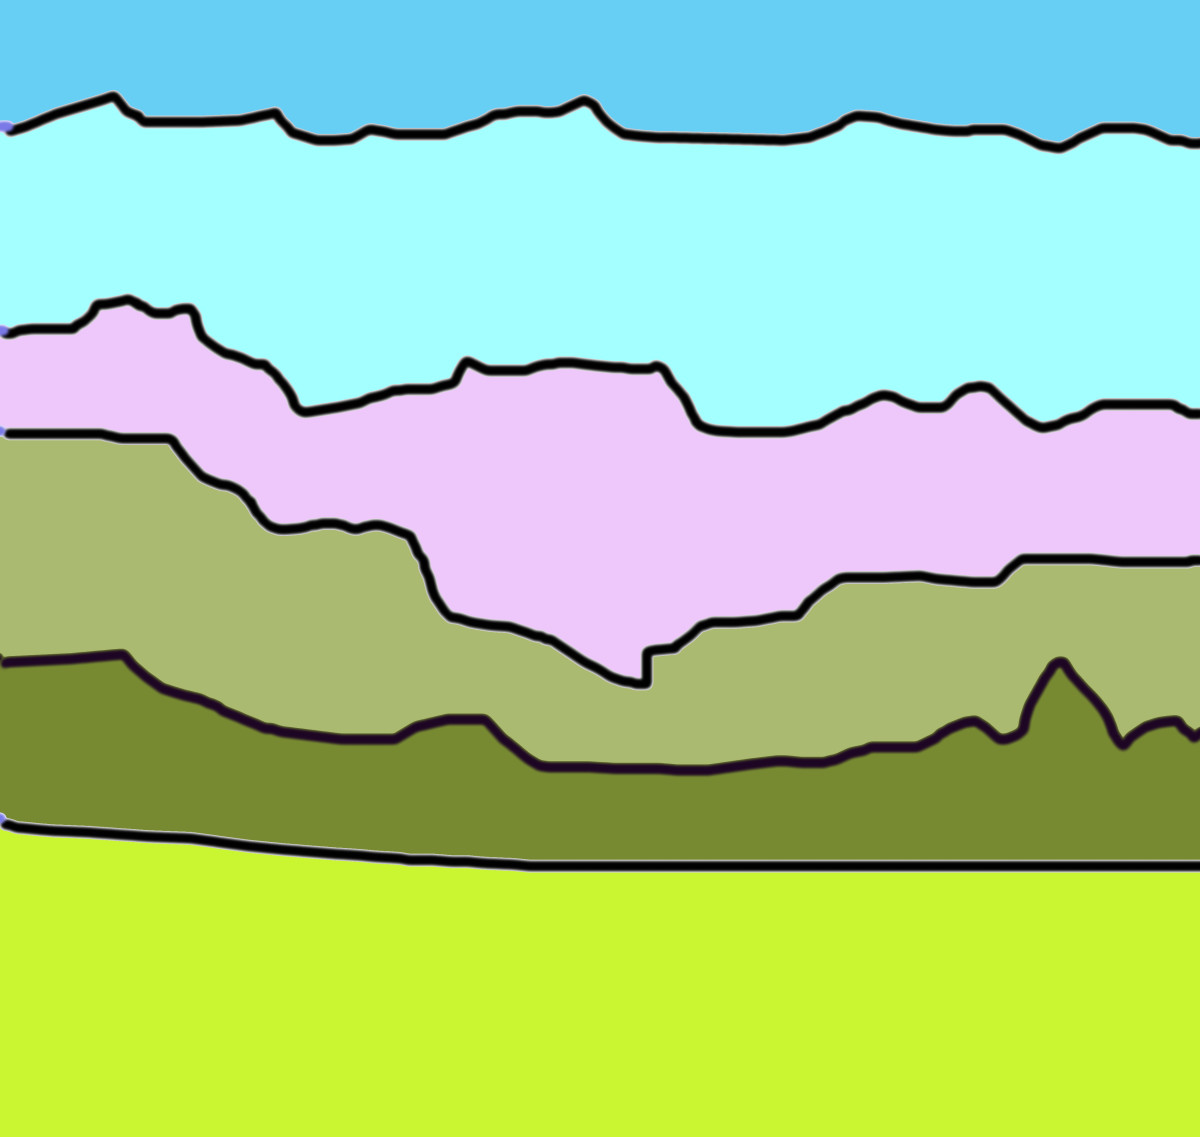 Color the horizontal areas according to a generic landscape scene, with grass, trees, mountains, and skies, and it becomes even more clear for the viewer.